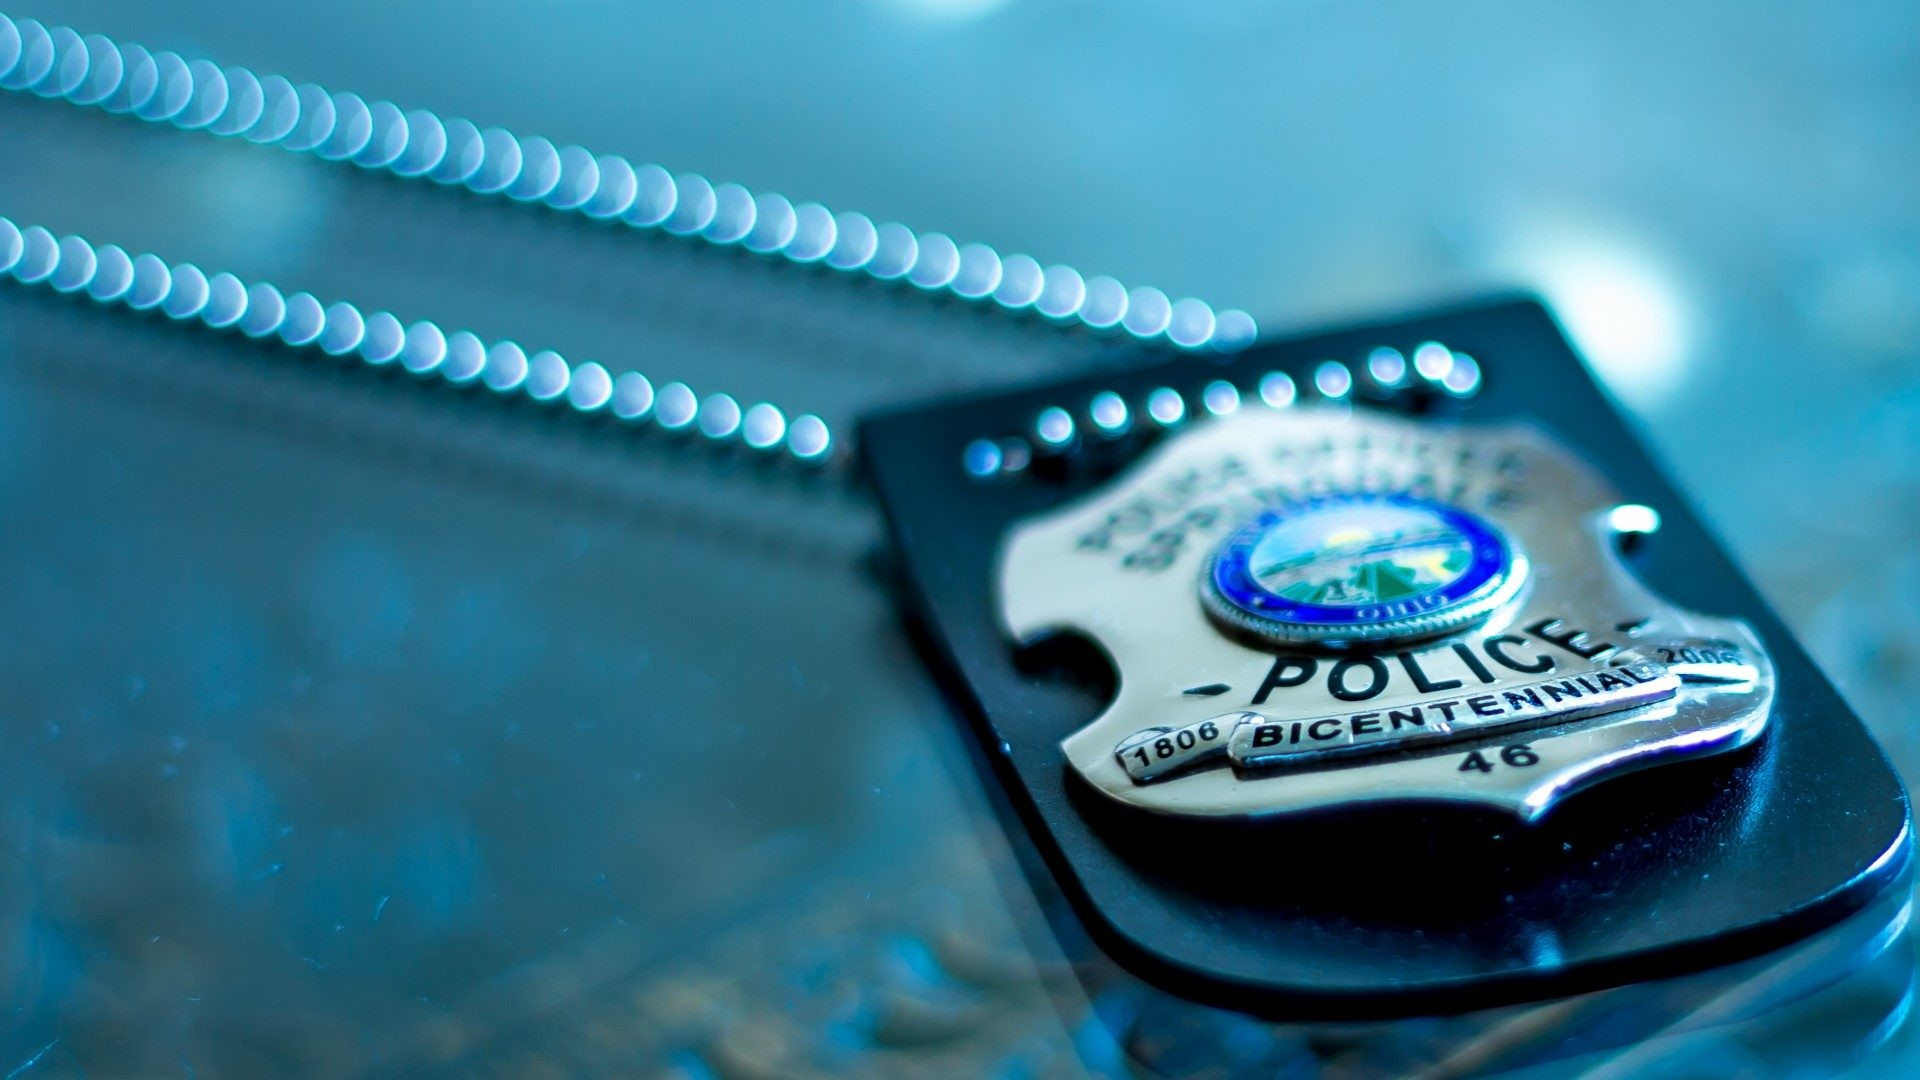 … free police wallpapers high quality resolution long wallpapers …